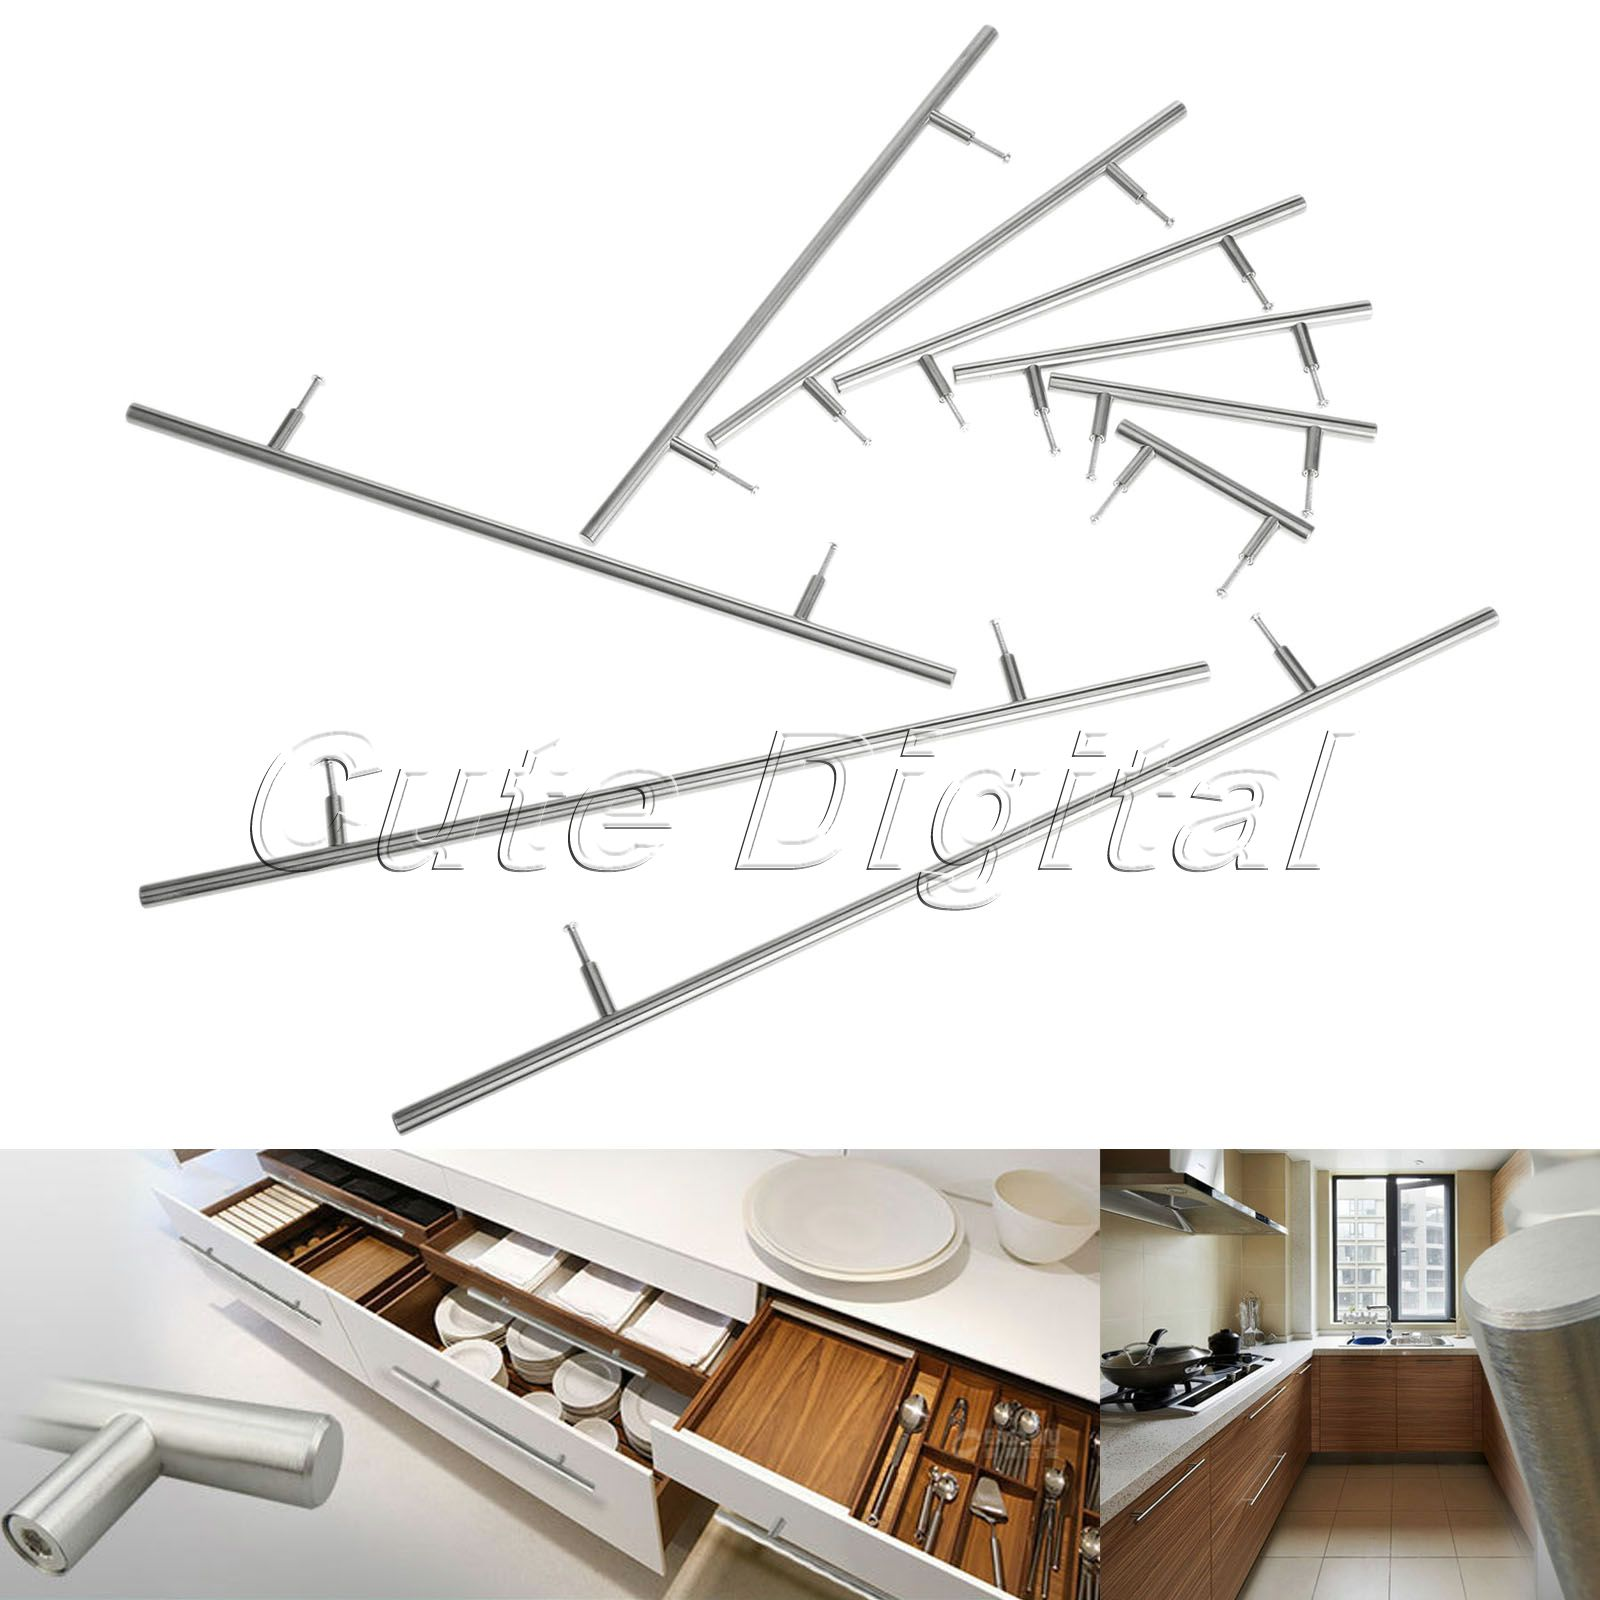 10mm Stainless Steel T Bar Kitchen Handles Cabinet Knobs and Handles for Furniture Drawer Cupboard Handle Hole Center 64mm~320mm 10pcs kitchen cabinet handles and knobs black furniture handle for kitchen cabinet drawer pull single hole 64mm 96mm 128mm